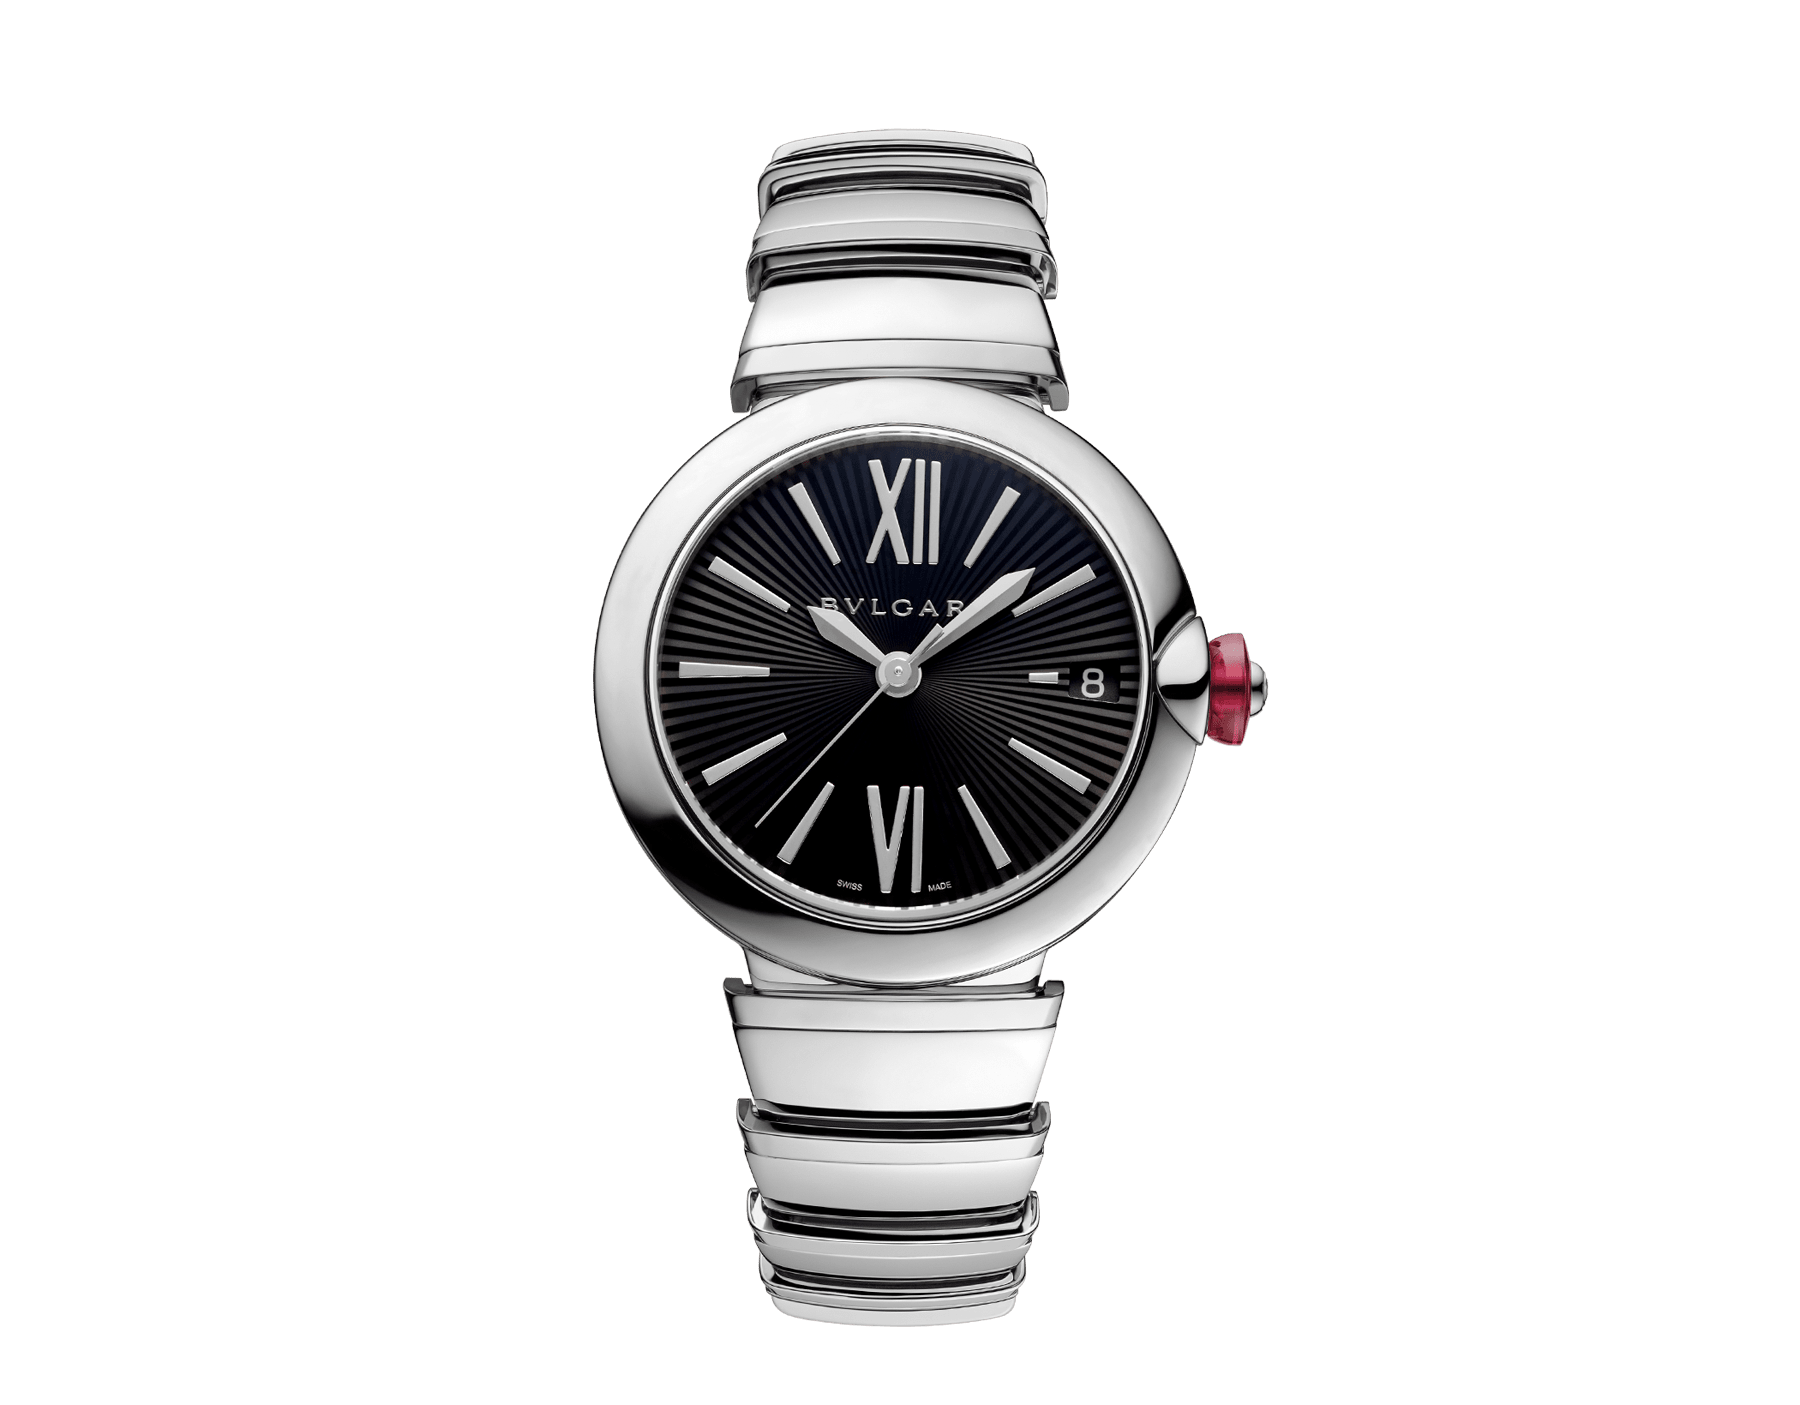 LVCEA watch in stainless steel case and bracelet, with black dial. 102688 image 1